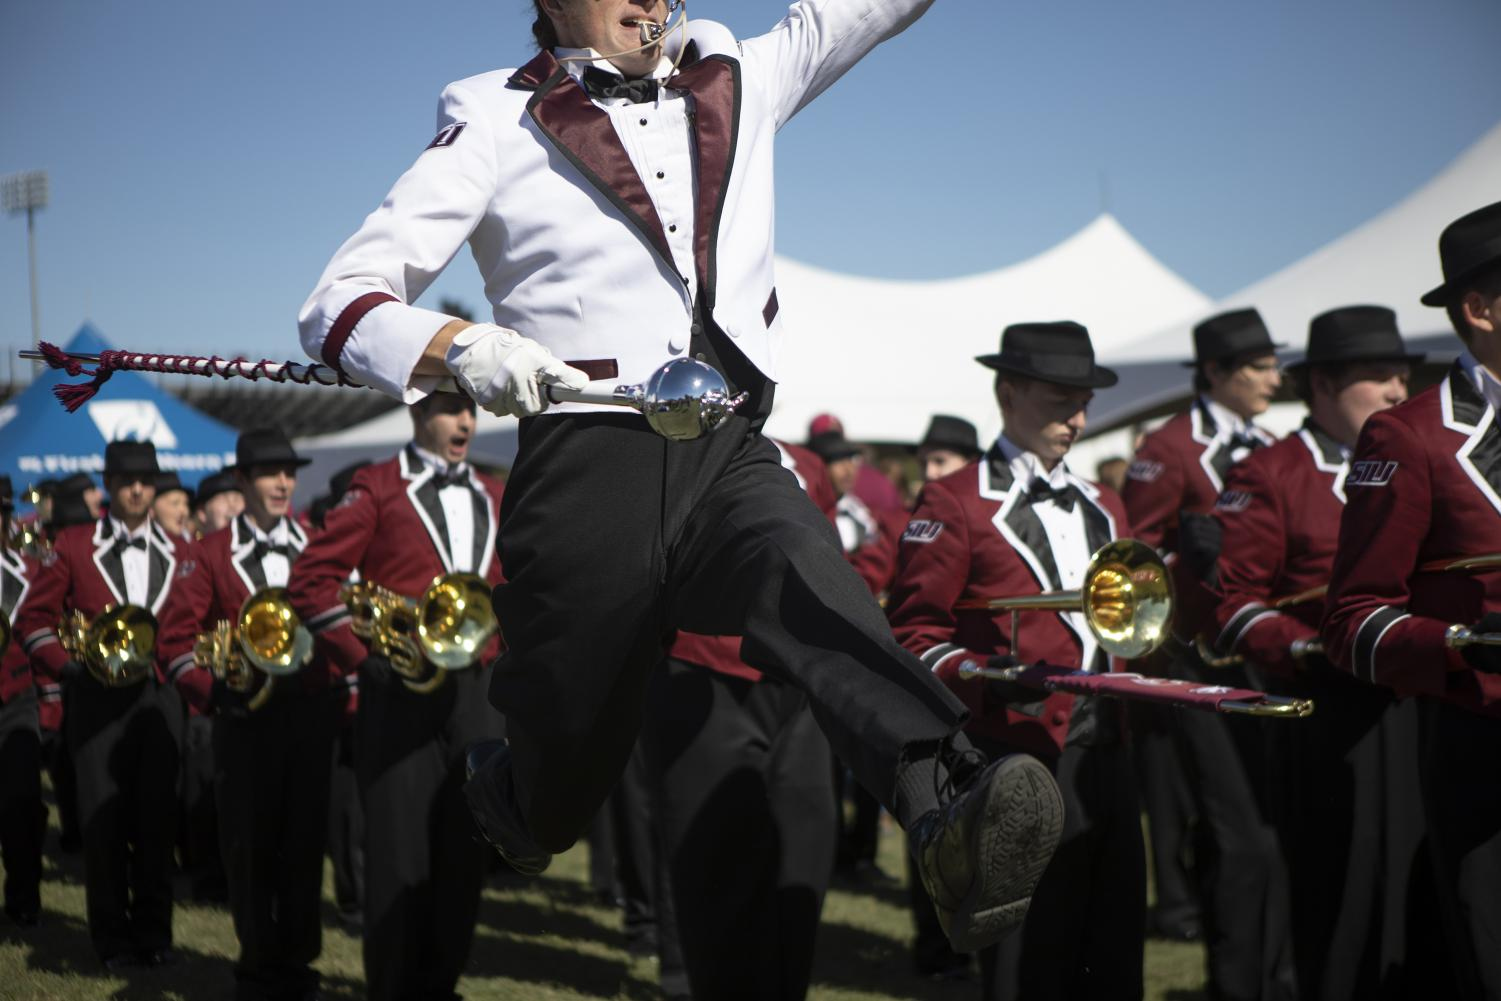 The+Marching+Salukis+perform+for+tailgaters+before+the+game+at+Saluki+Stadium%2C+Saturday%2C+Oct.+20%2C+2018.+%28Isabel+Miller+%7C+%40IsabelMillerDE%29